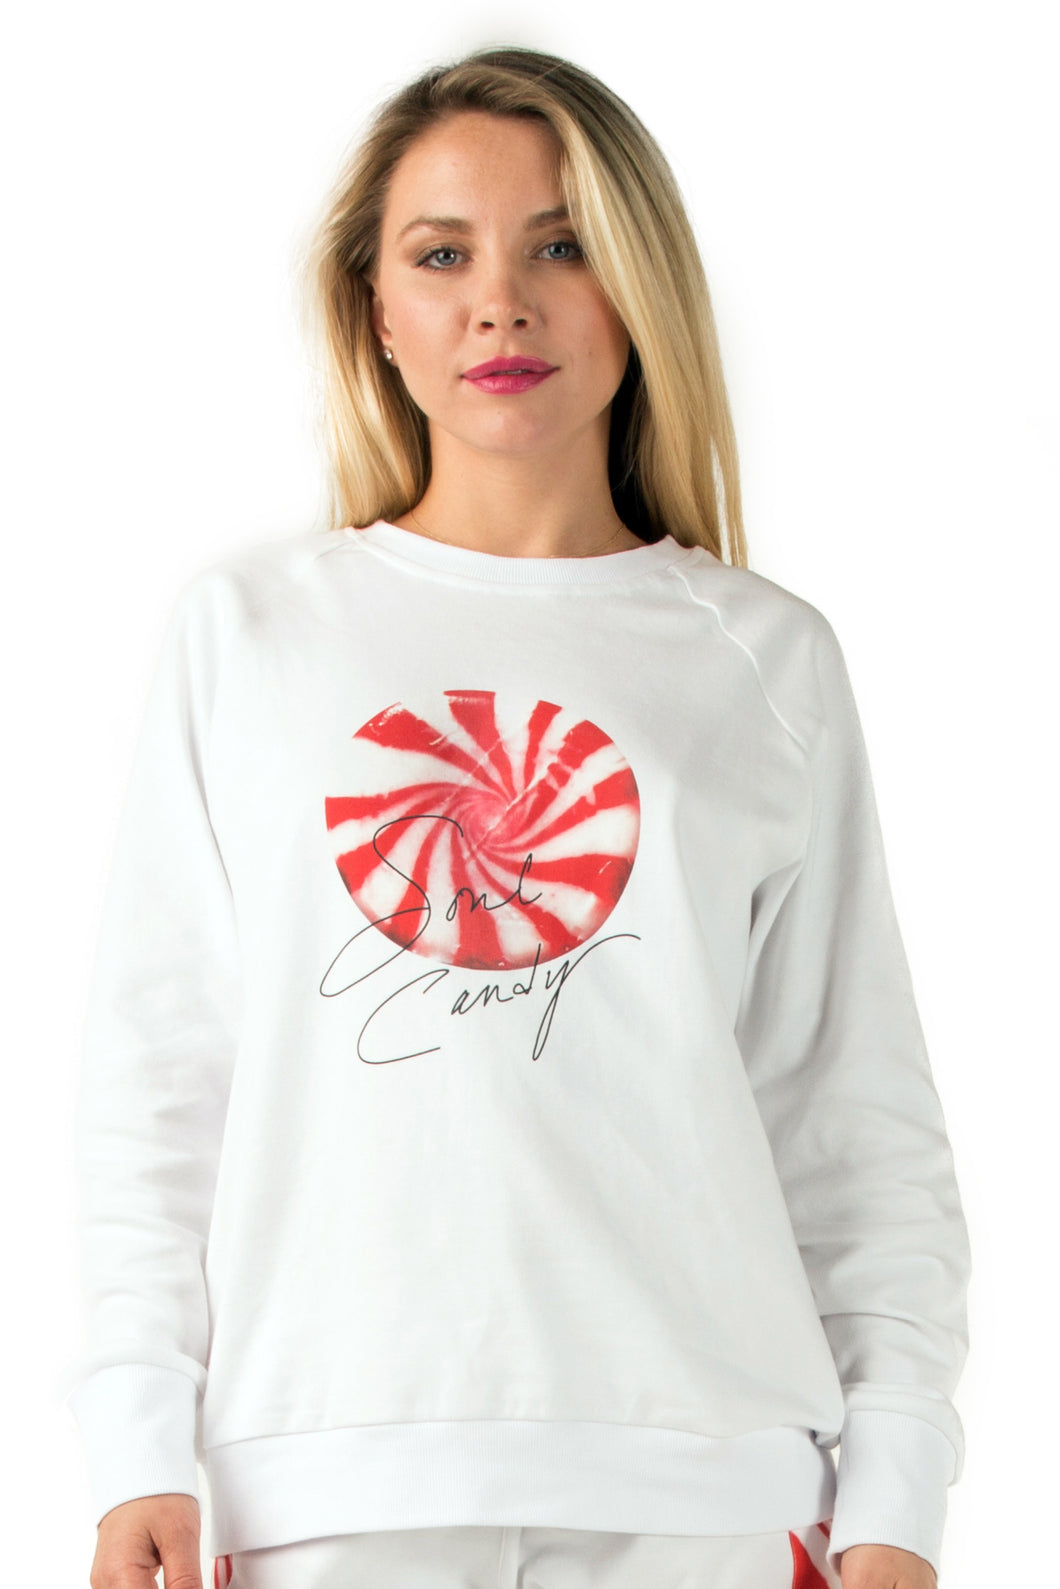 Mint to be! Sweatshirt- Adult